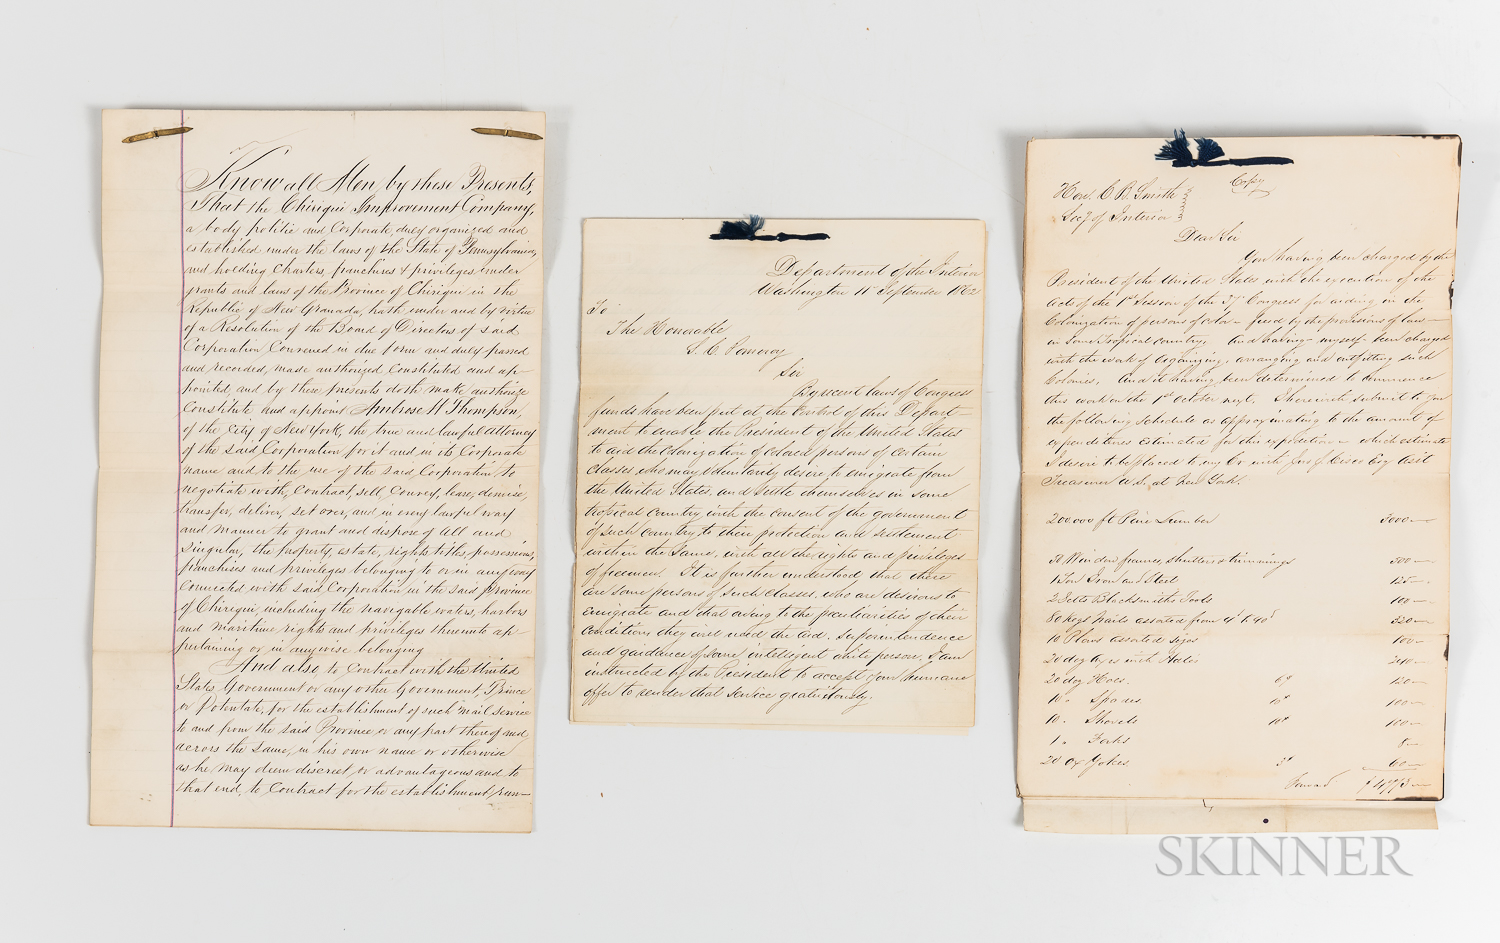 Archive of Documents Concerning the Chiriqui Colonization Project of 1862 and Related Senator Samuel Clark Pomeroy Papers.